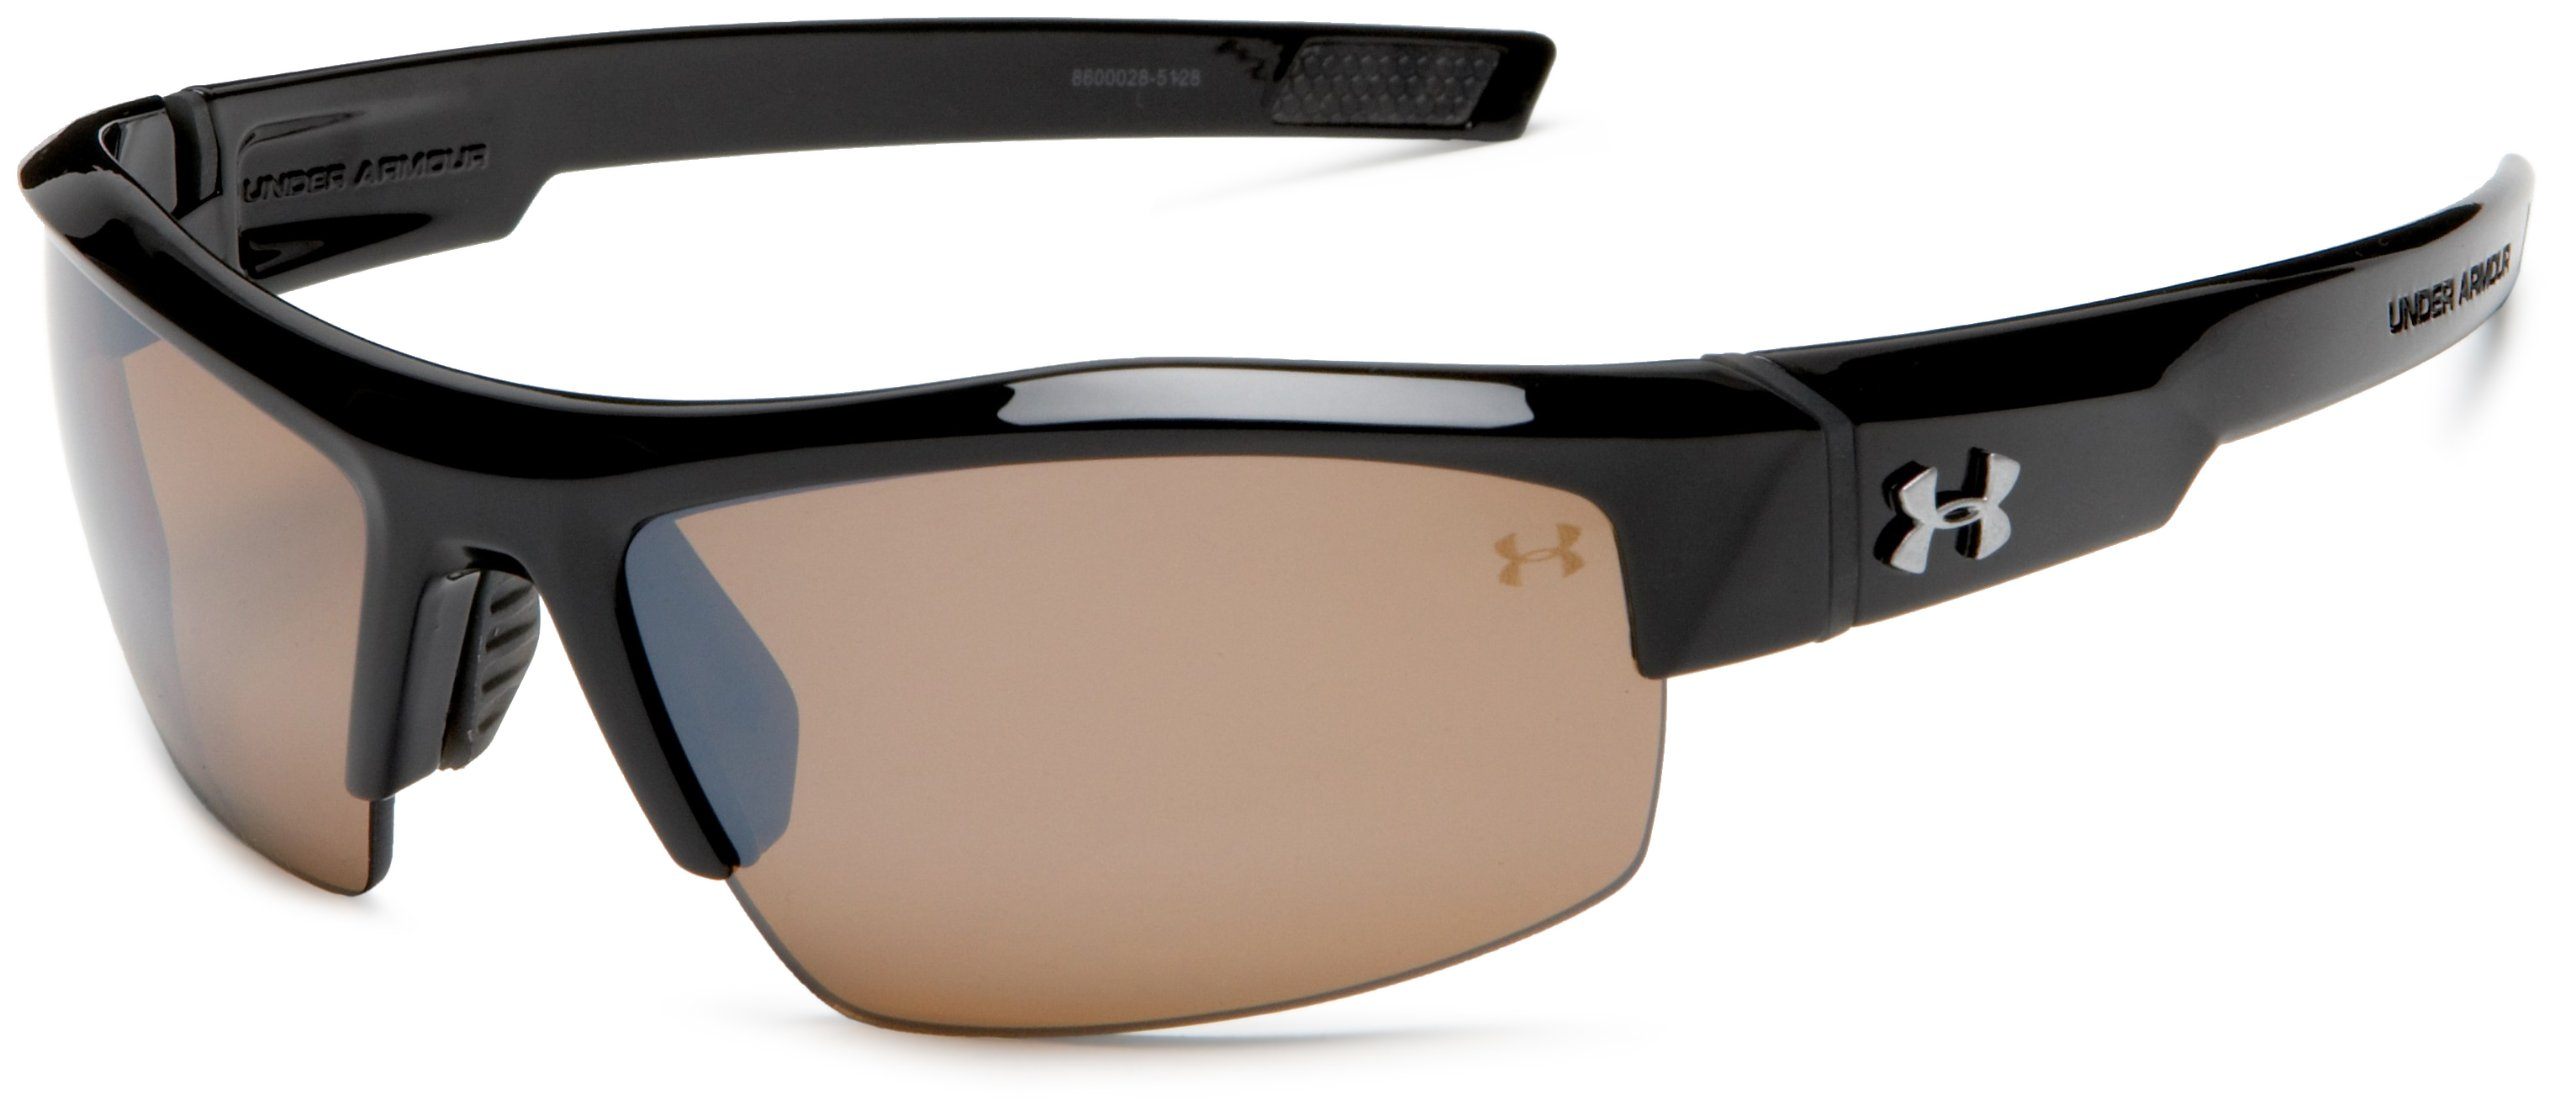 Under Armour Igniter Polarized Multiflection Sunglasses, Shiny Black Frame/Brown Lens, one size